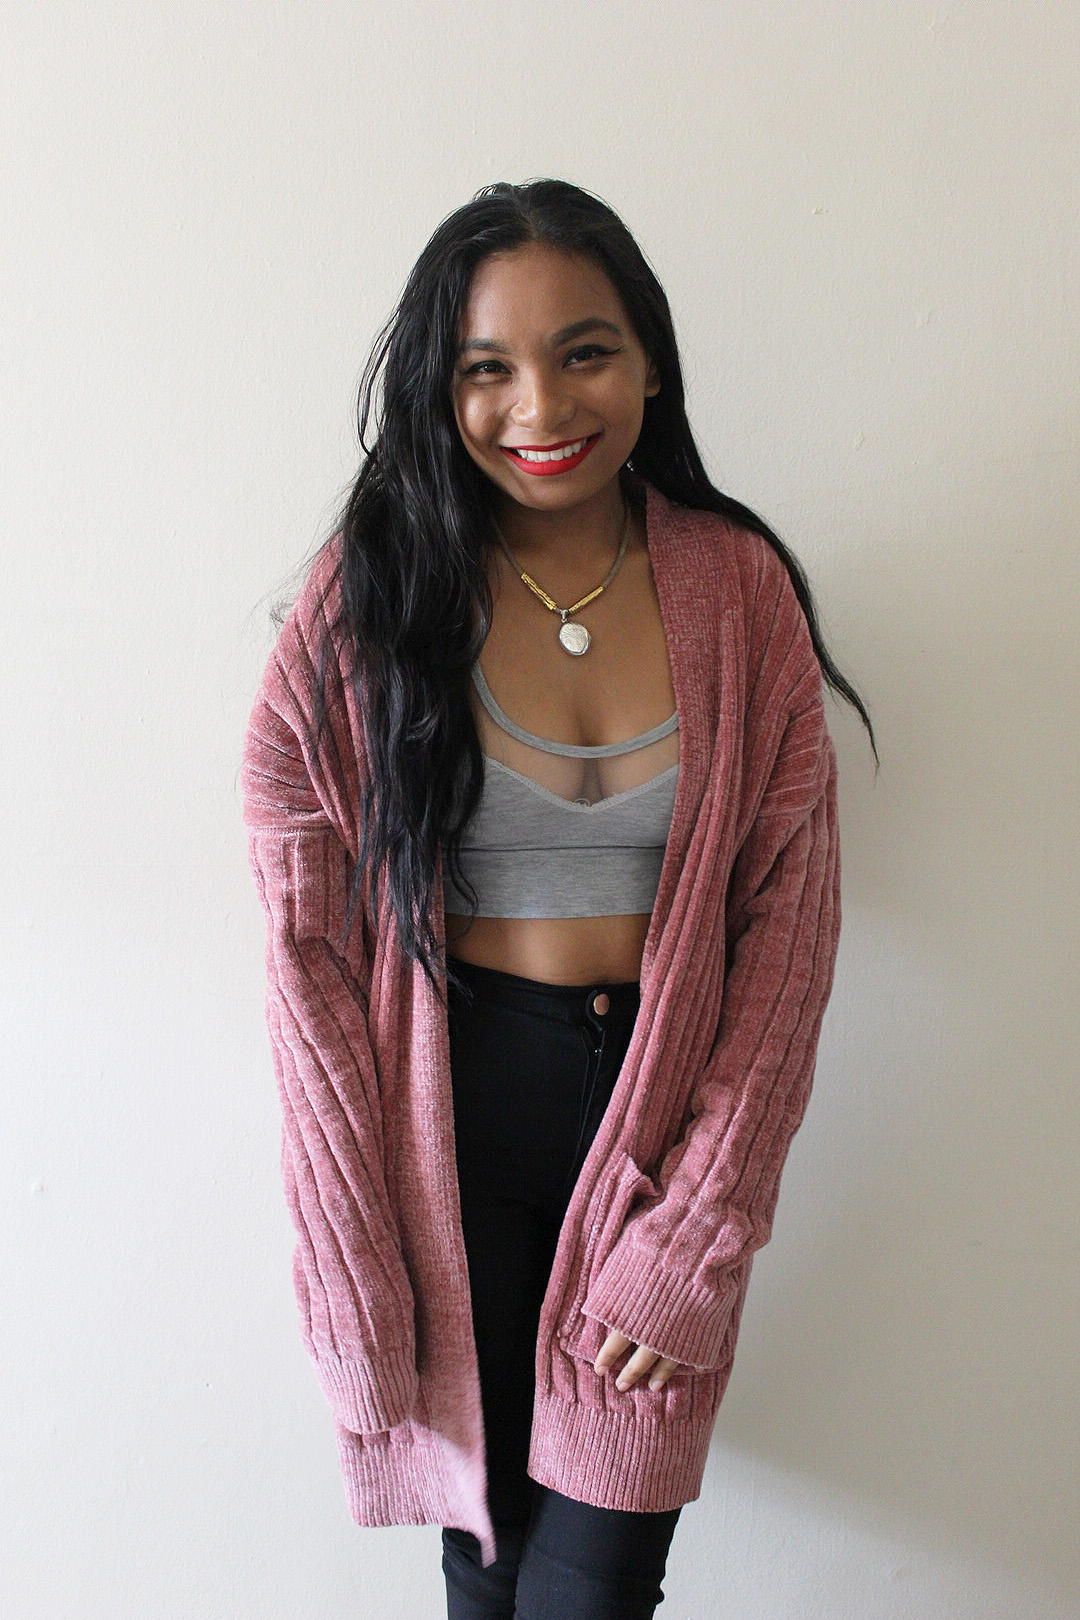 Cozy-Pink-Cardigan-for-the-Fall-Style-Blogger-Fashionista-LINDATENCHITRAN-1-1616x1080